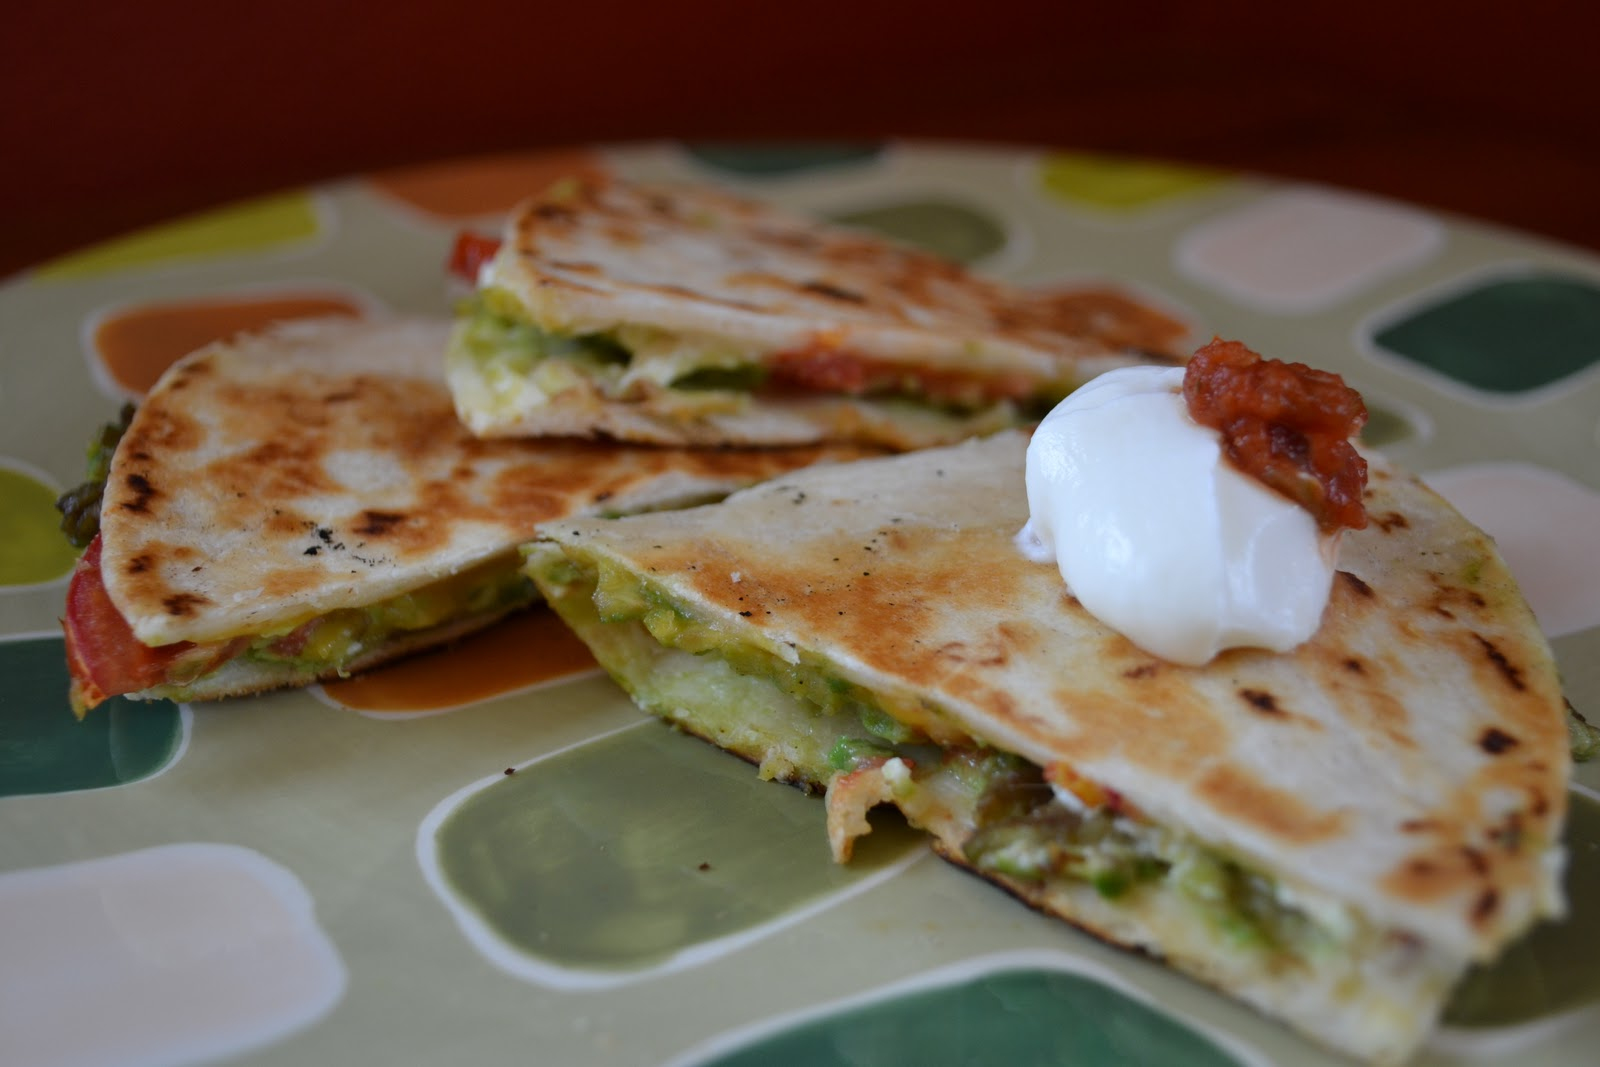 avocado sauce quesadillas quesadillas chicken quesadillas quesadillas ...